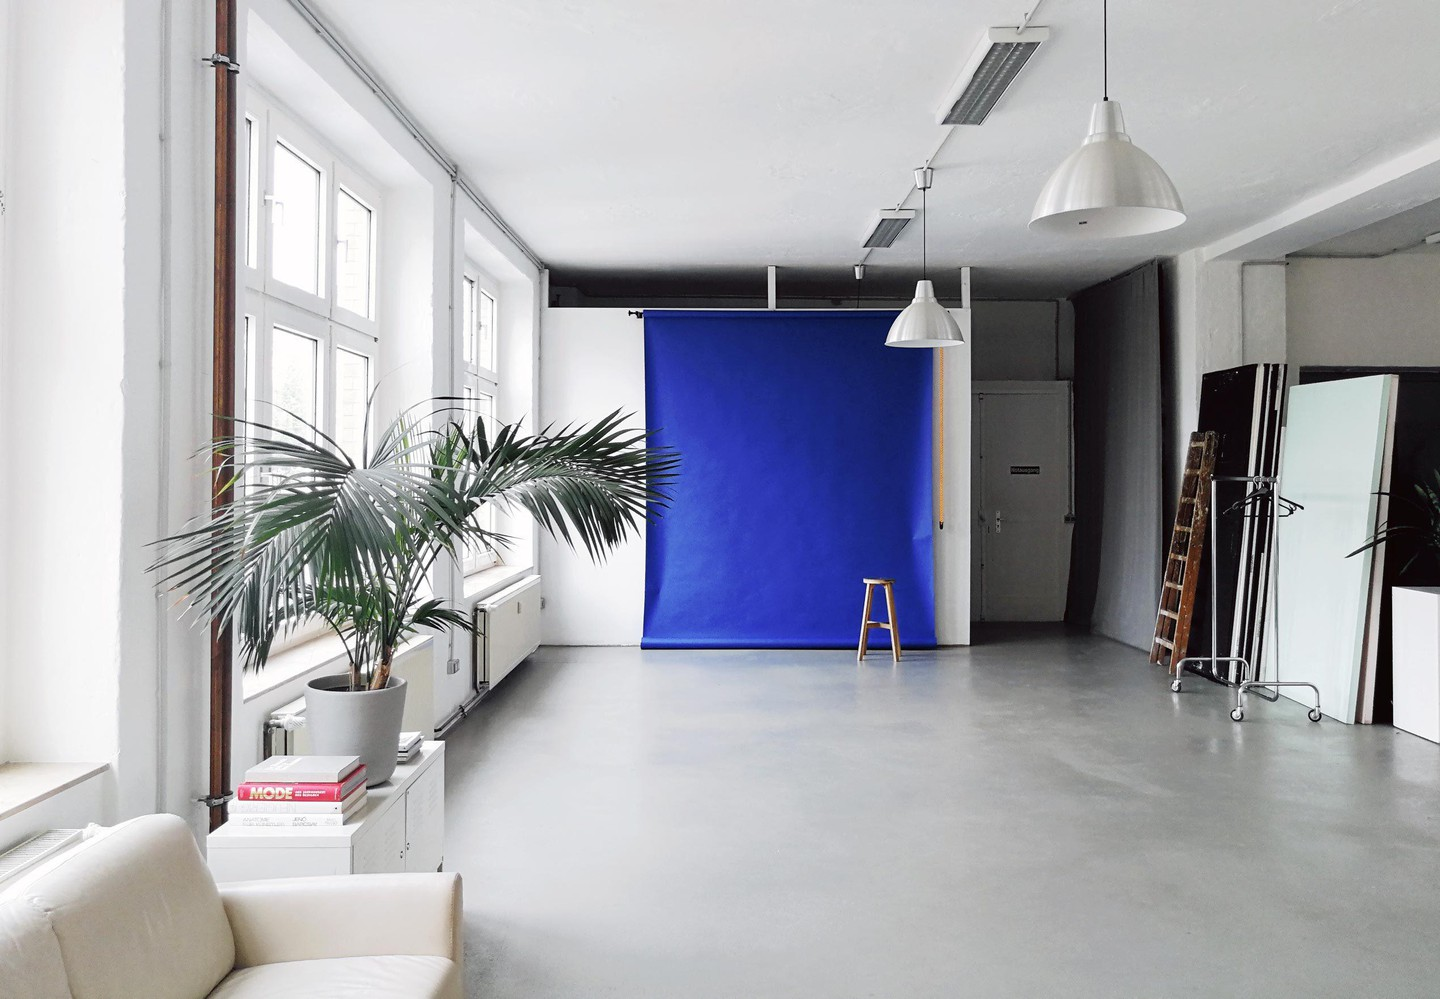 Berlin Photography Studio Fotostudio IKONIC FOTOSTUDIO 1 image 0